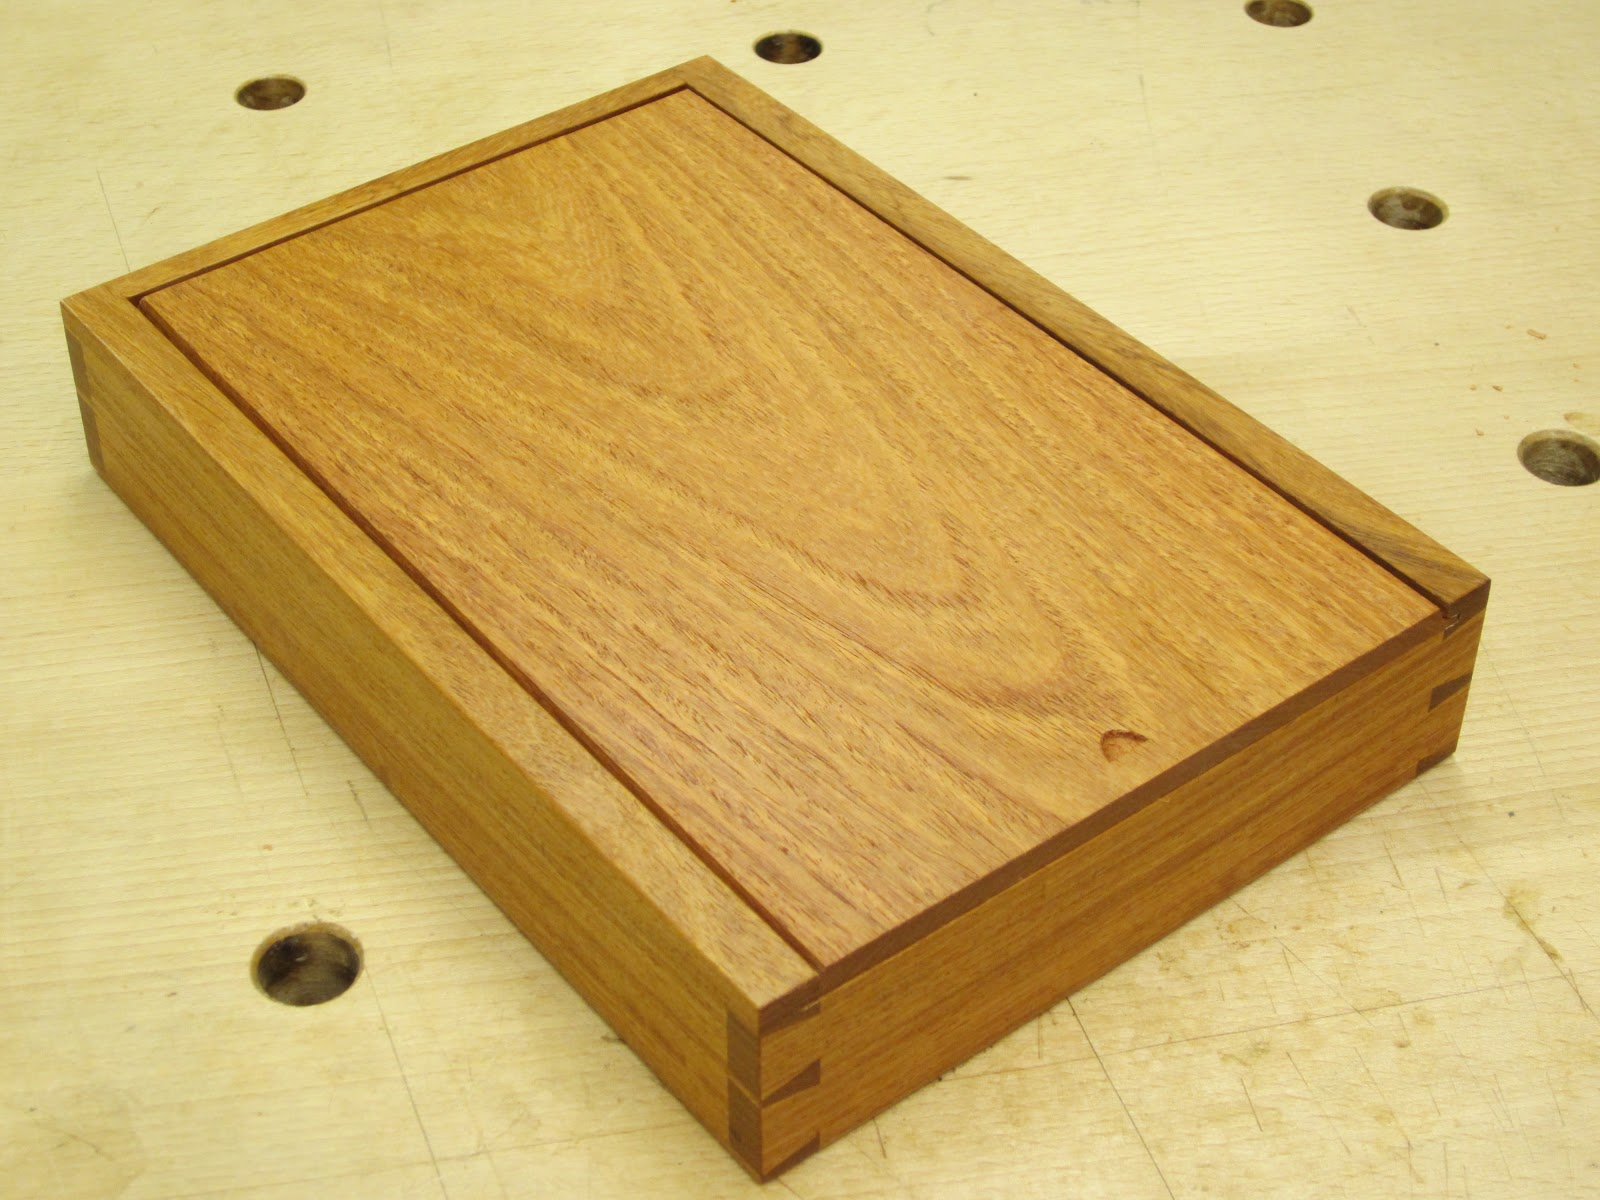 Highland Woodworking Chisel Jig Outdoor Wood Projects